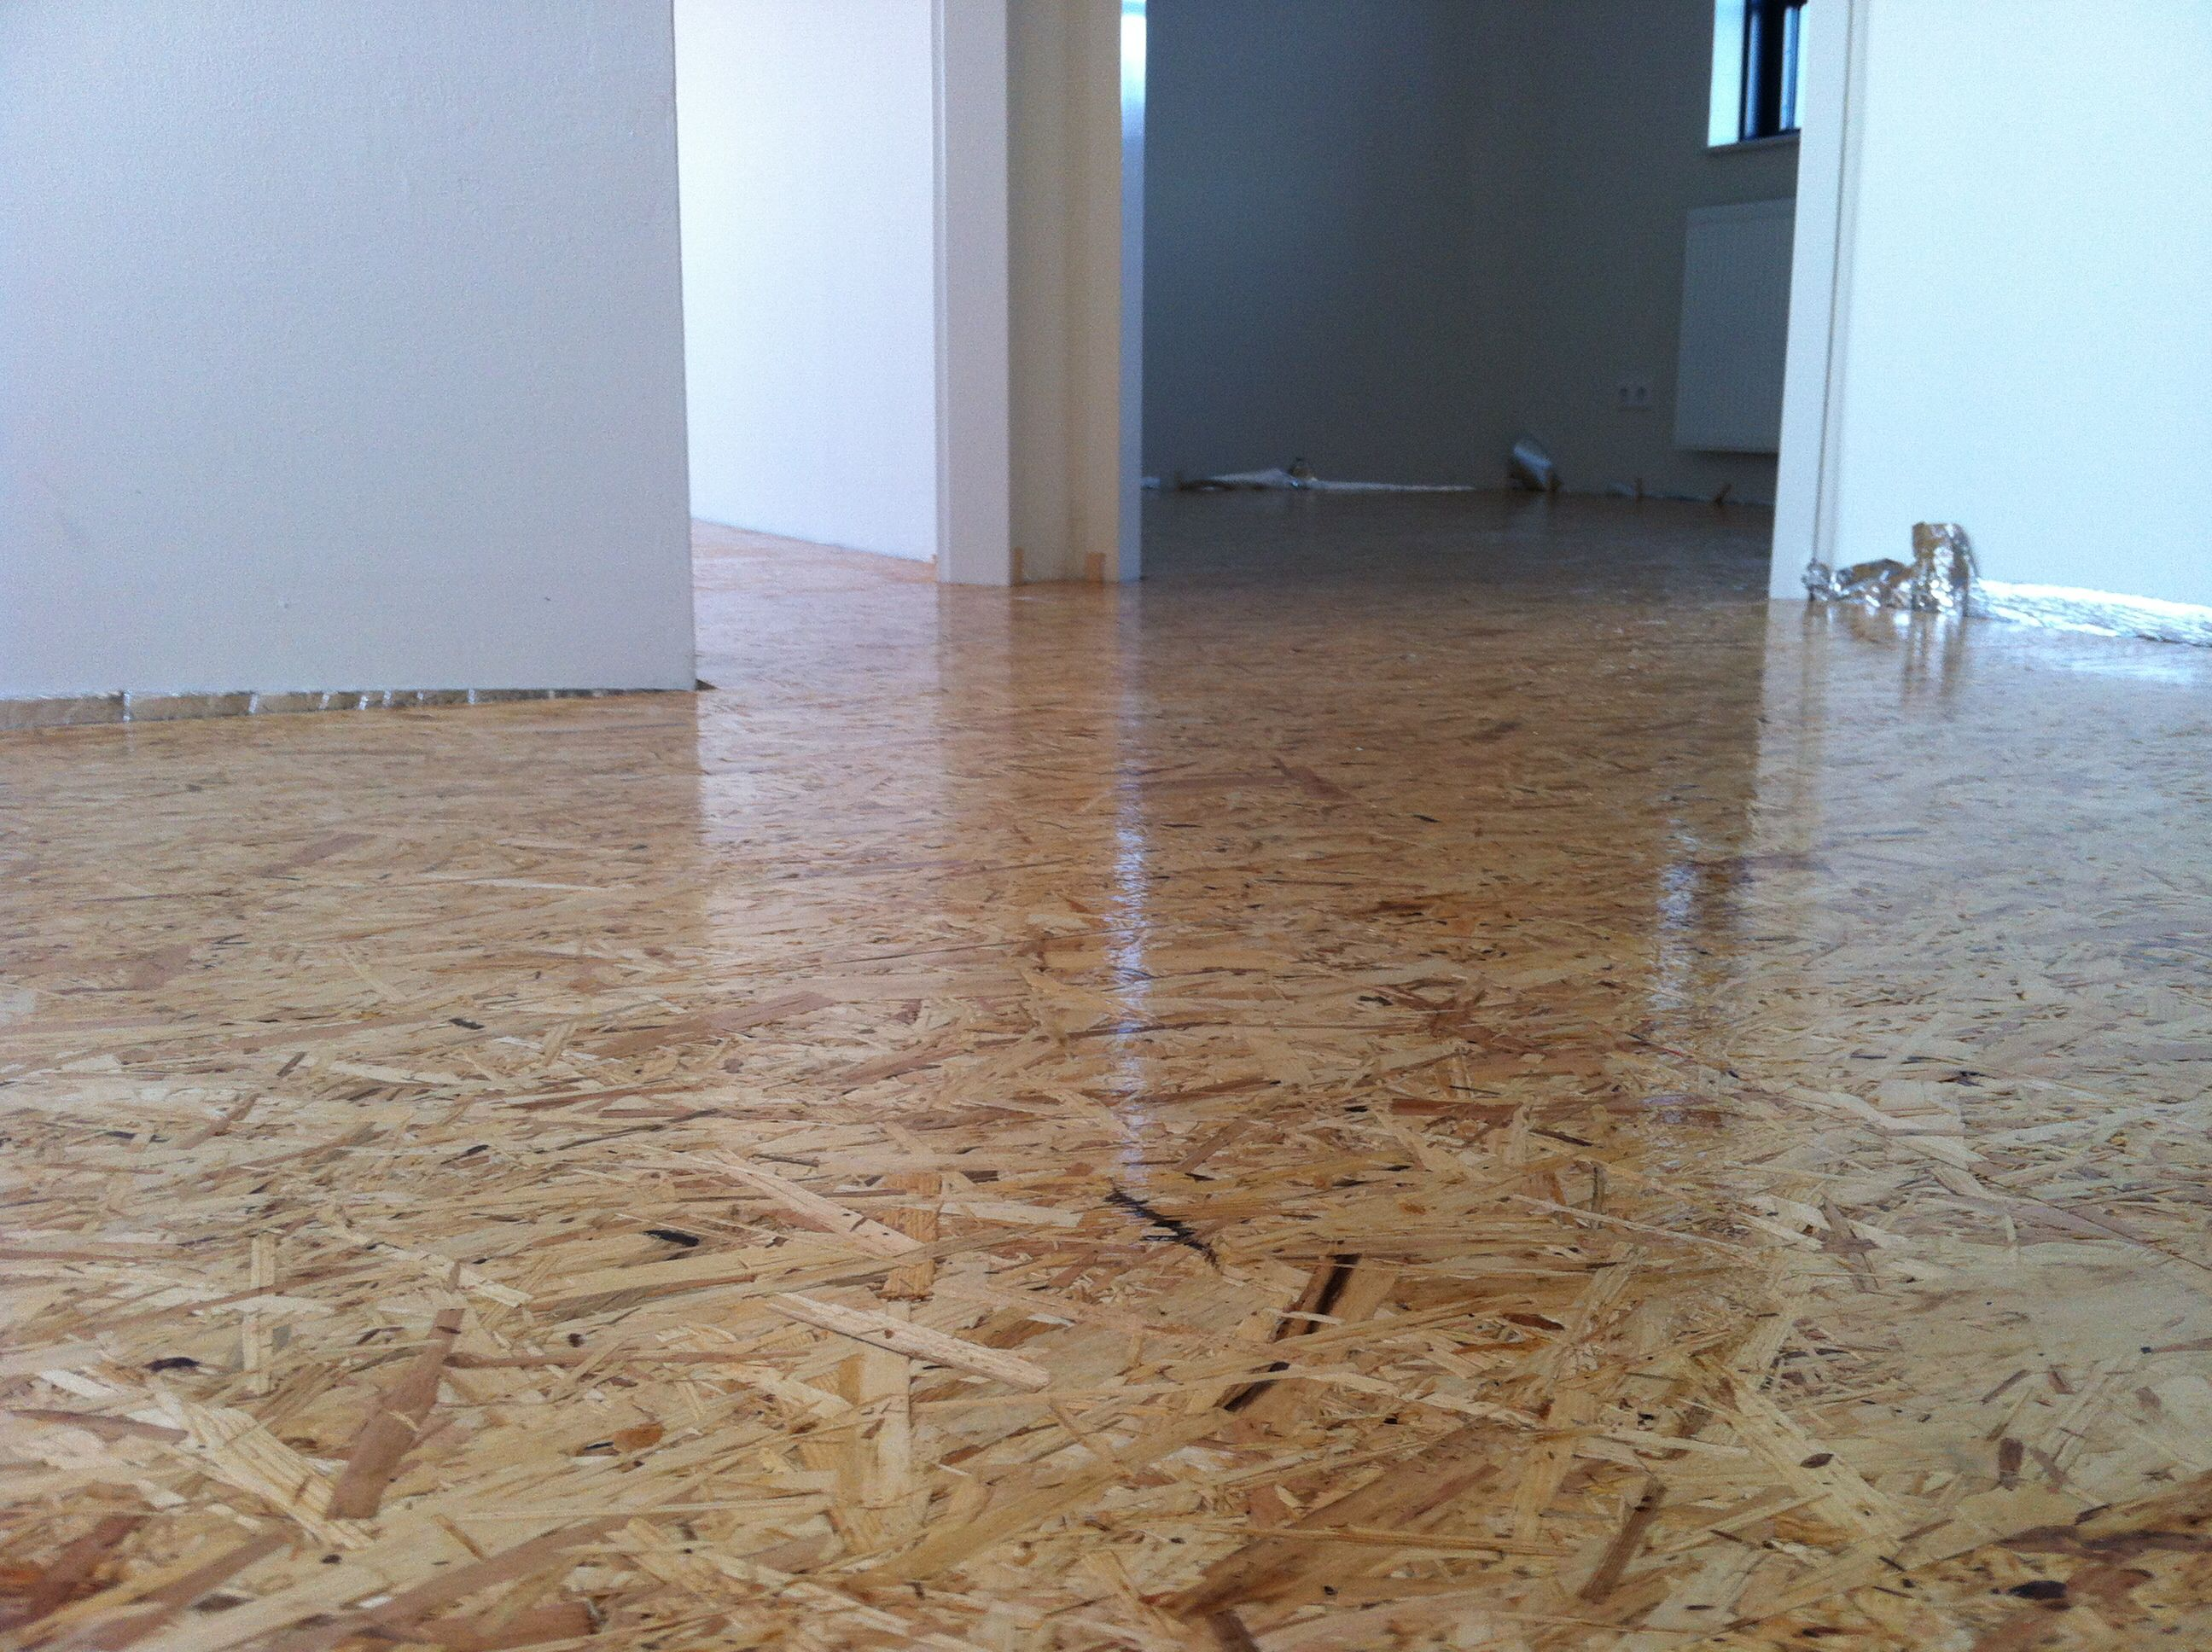 Oriented strand board as our wooden floor. With 3 layers